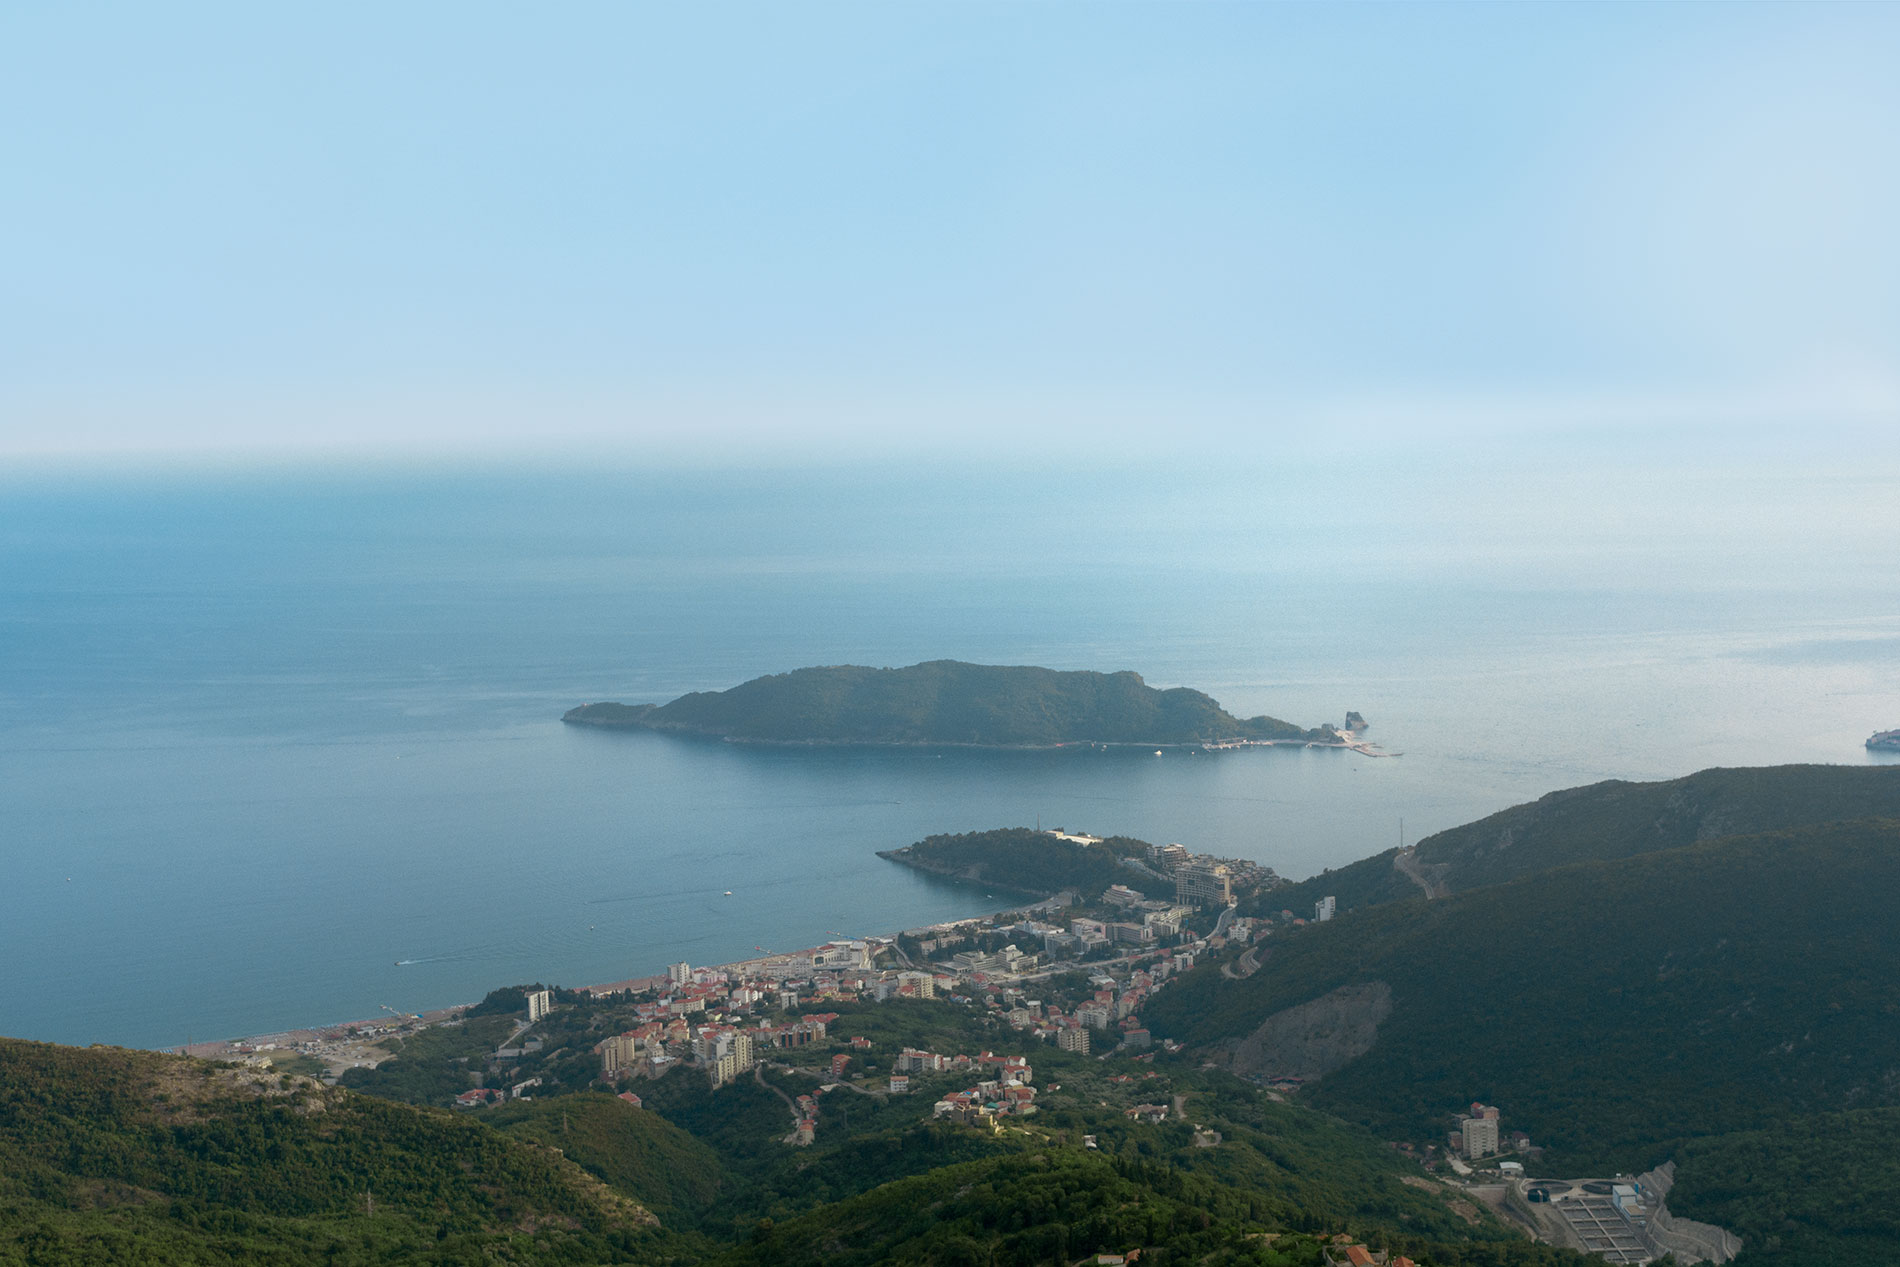 View to Budva from the road